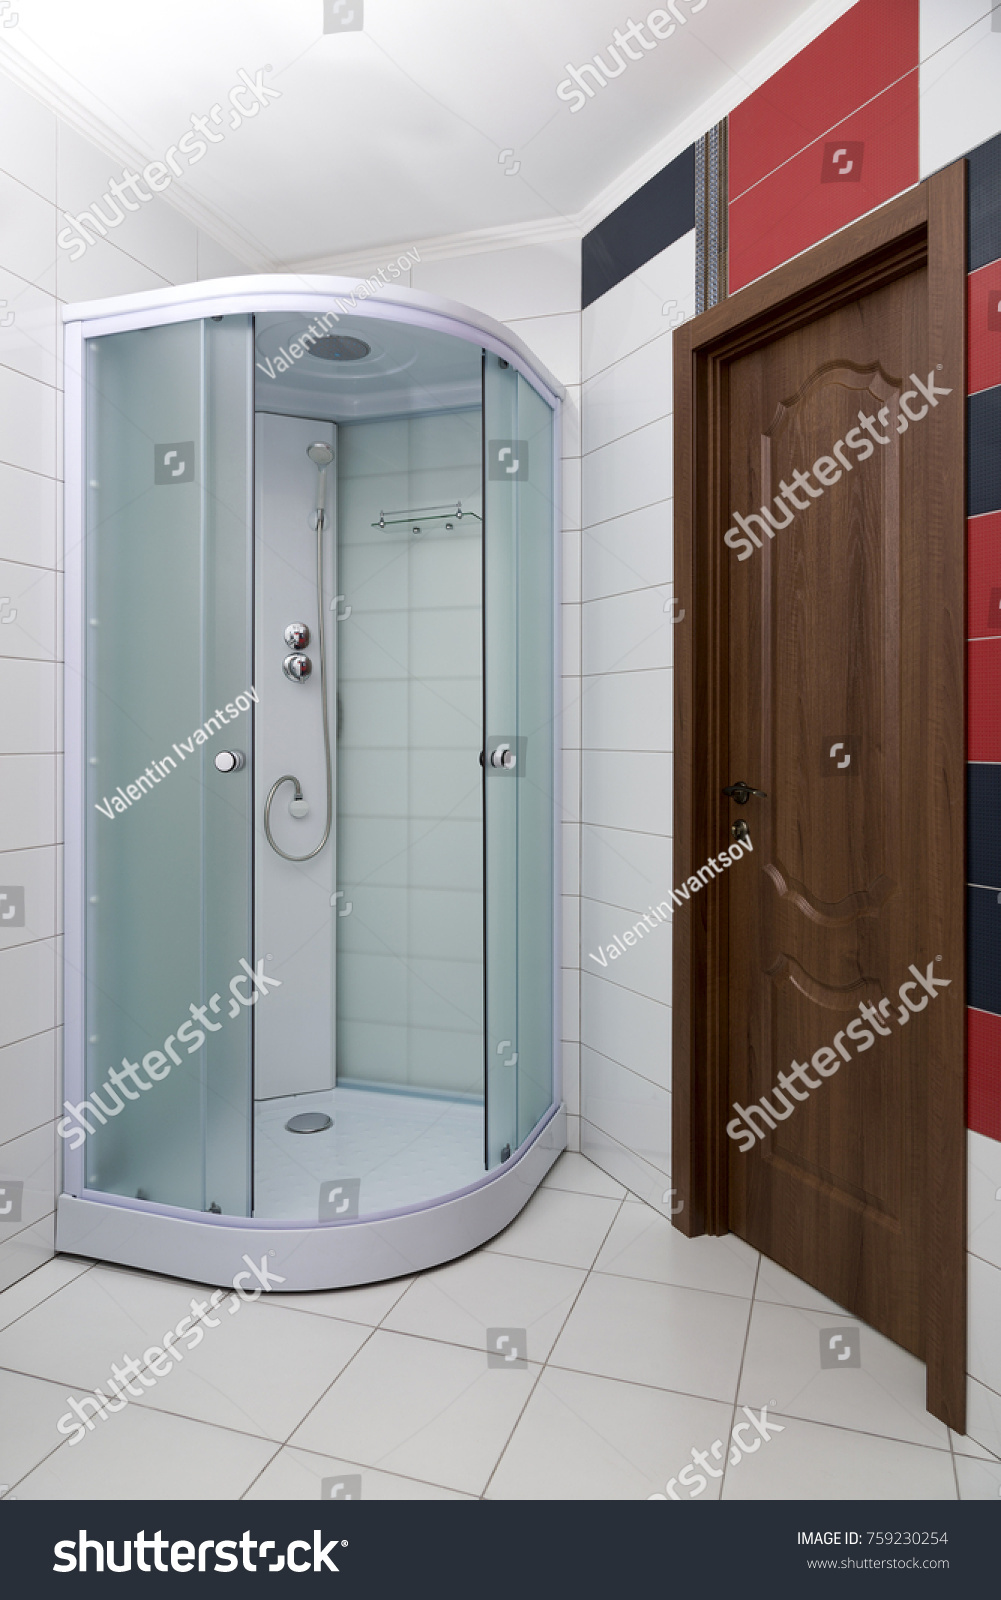 Bathroom interior with a new shower cubicle | EZ Canvas